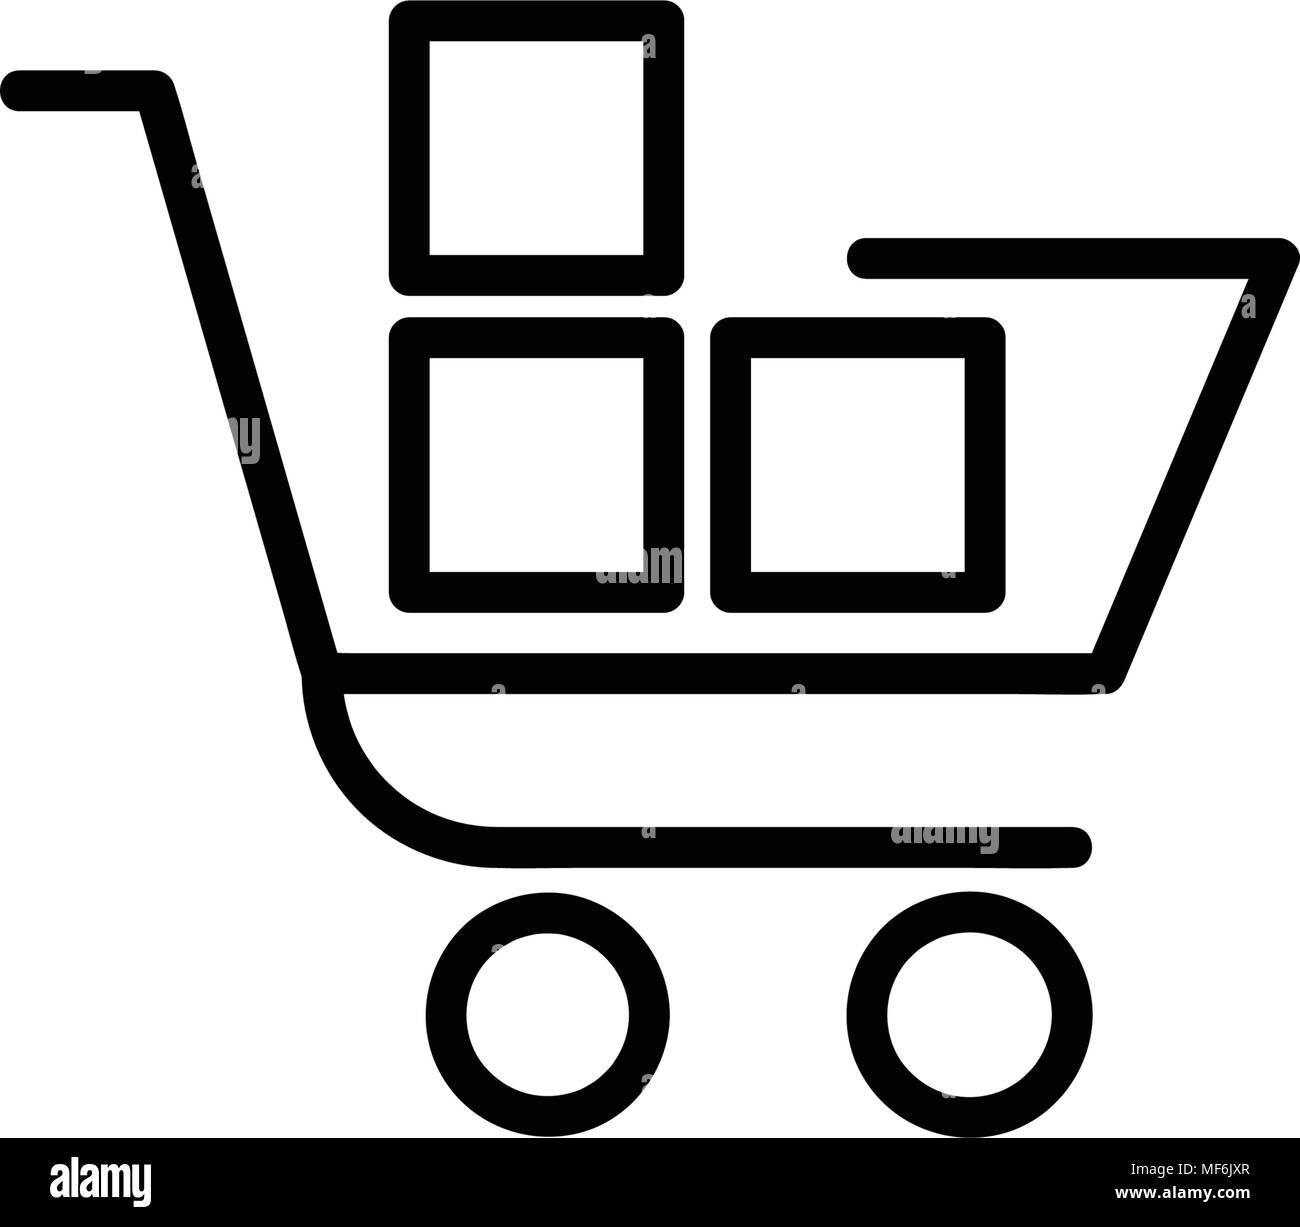 Shopping trolley with boxes icon, isolated on white background - Stock Image